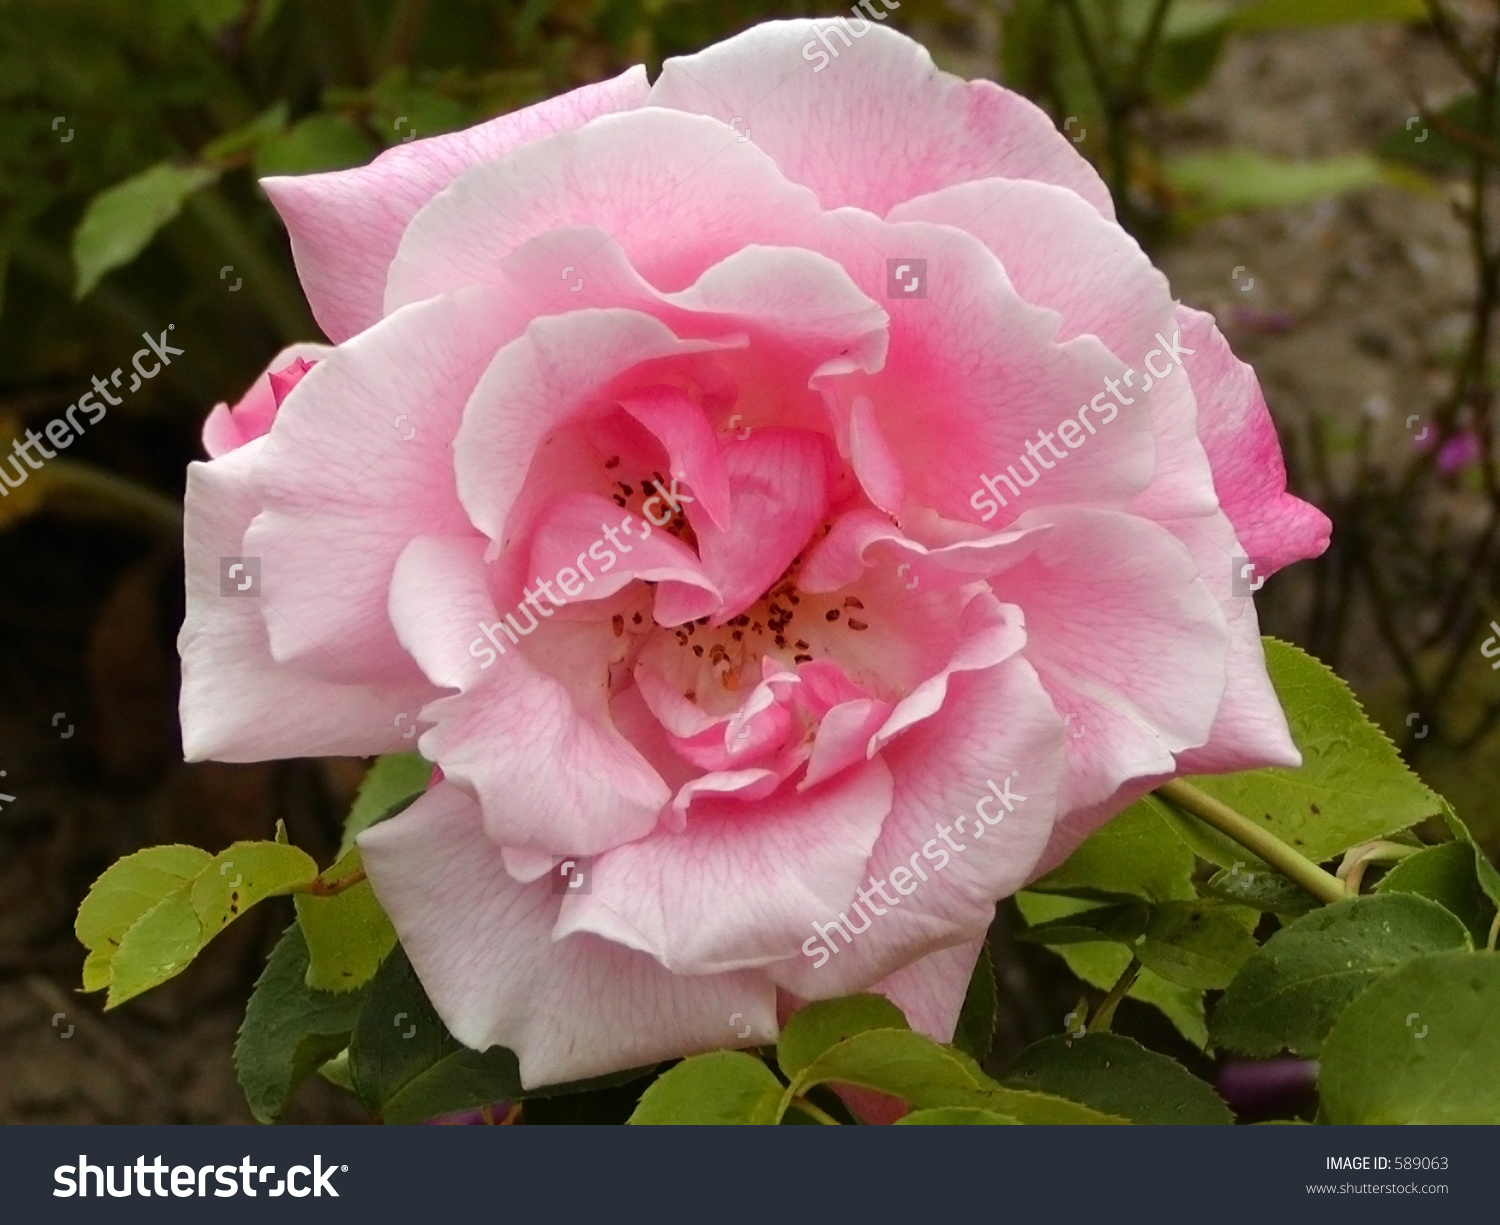 A Nice Pink Flower Stock Photo 589063 : Shutterstock